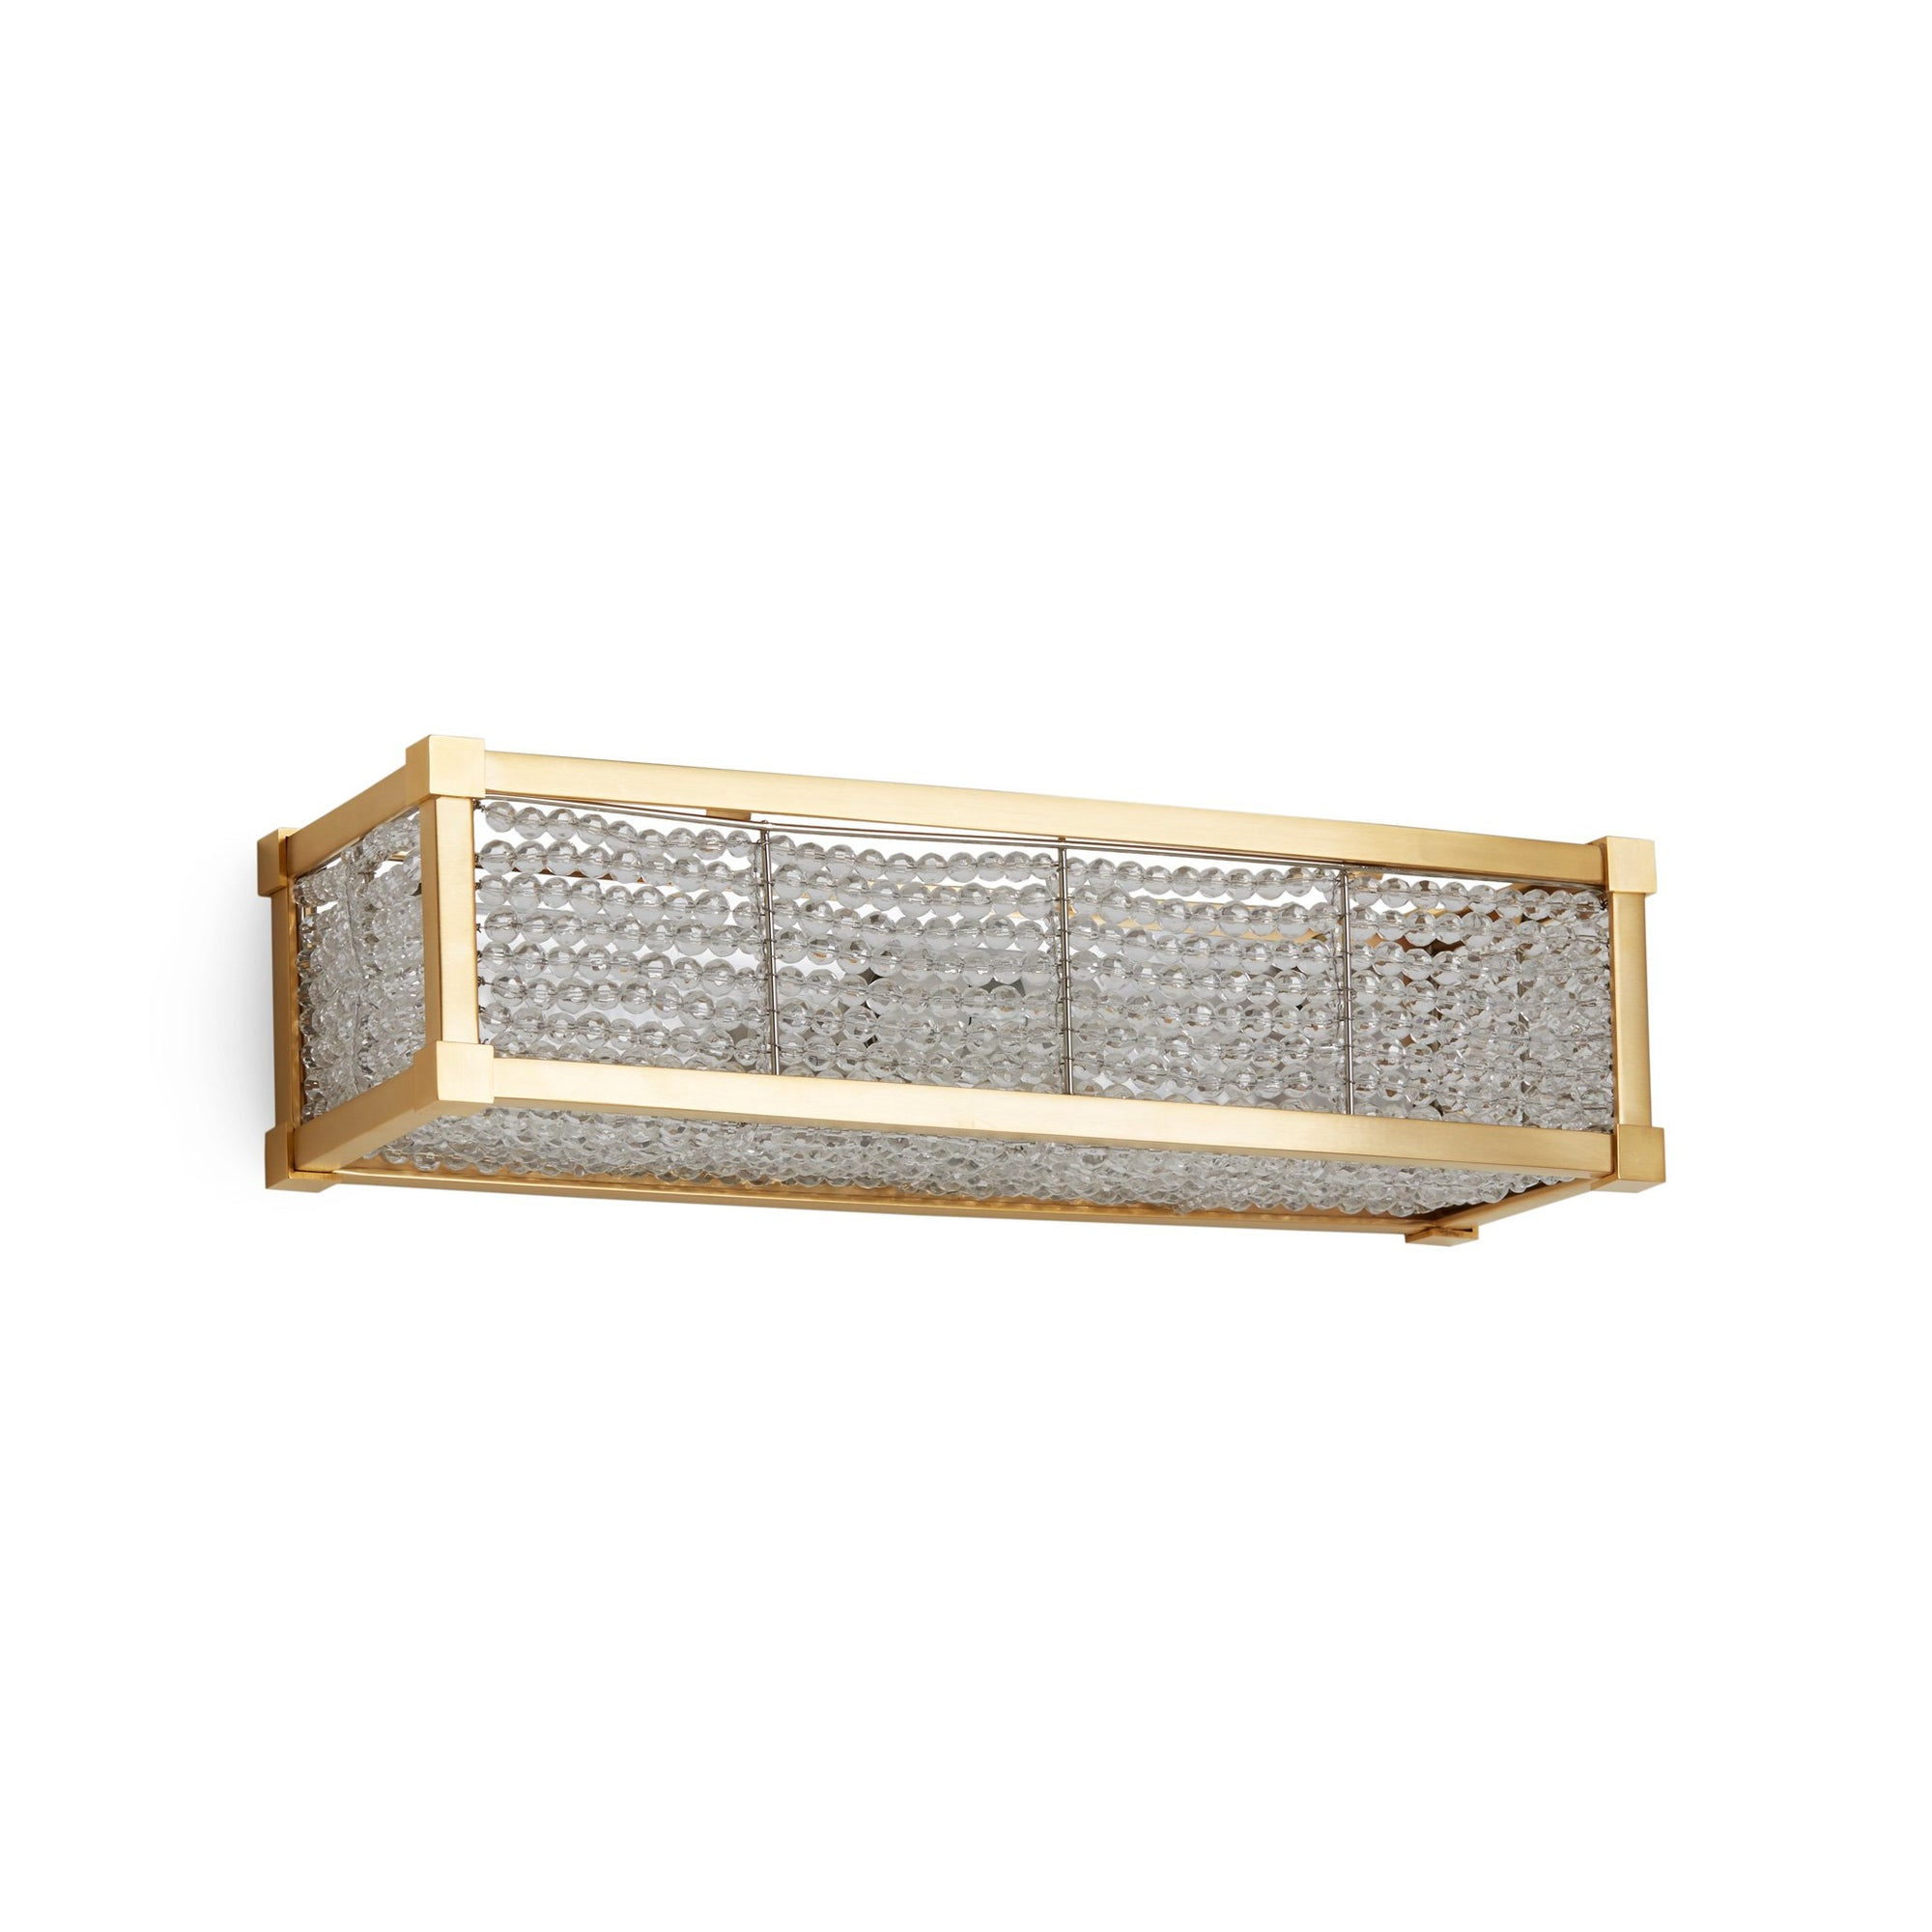 7114CB-16-GP Sherle Wagner International Square Knuckle Crystal Beaded Panel Light in Gold Plate metal finish